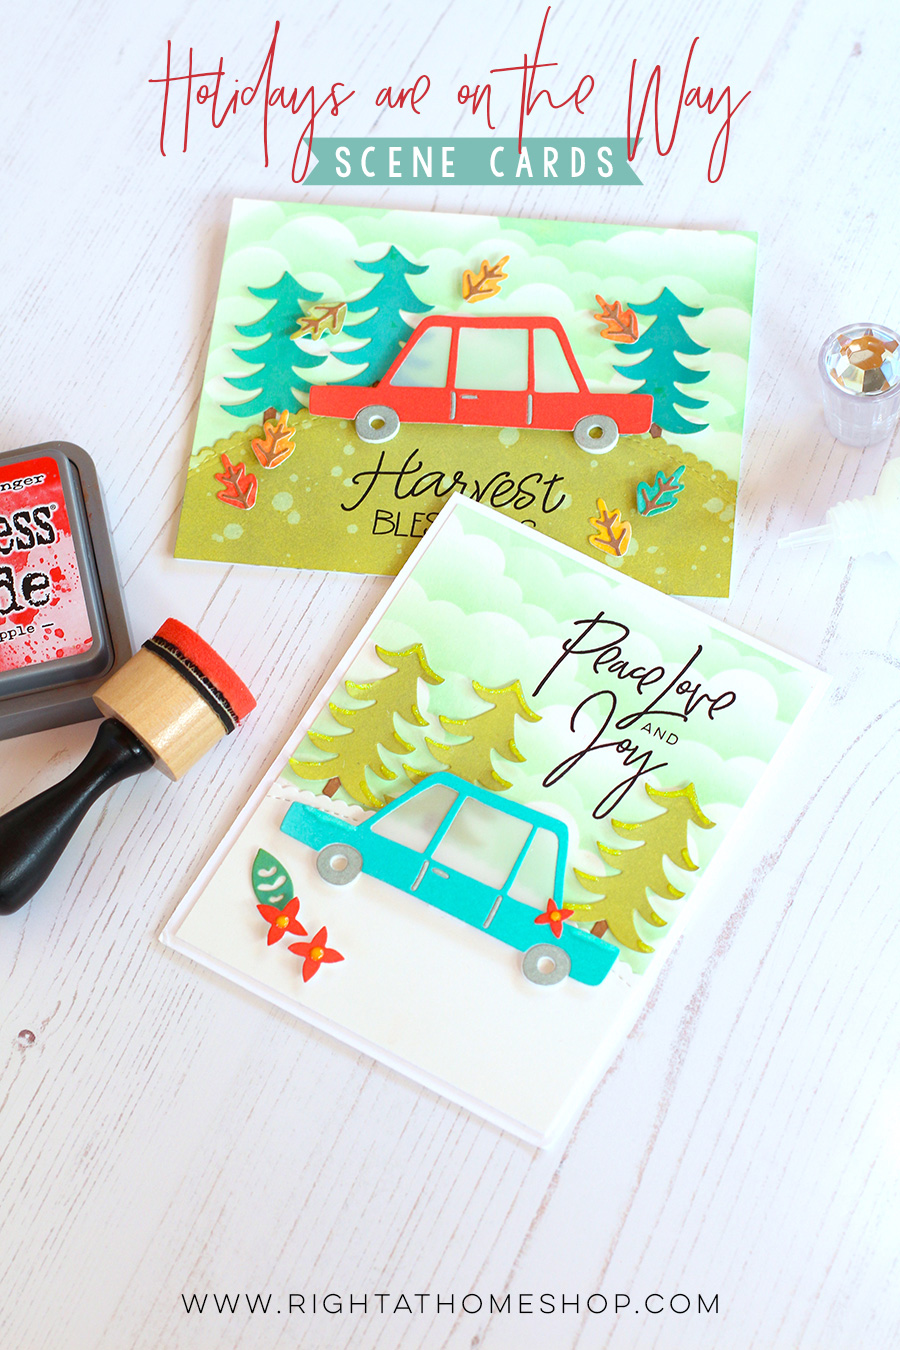 Holidays are on the Way Scene Cards Using Distress Oxide Inks by Nicole // rightathomeshop.com/blog